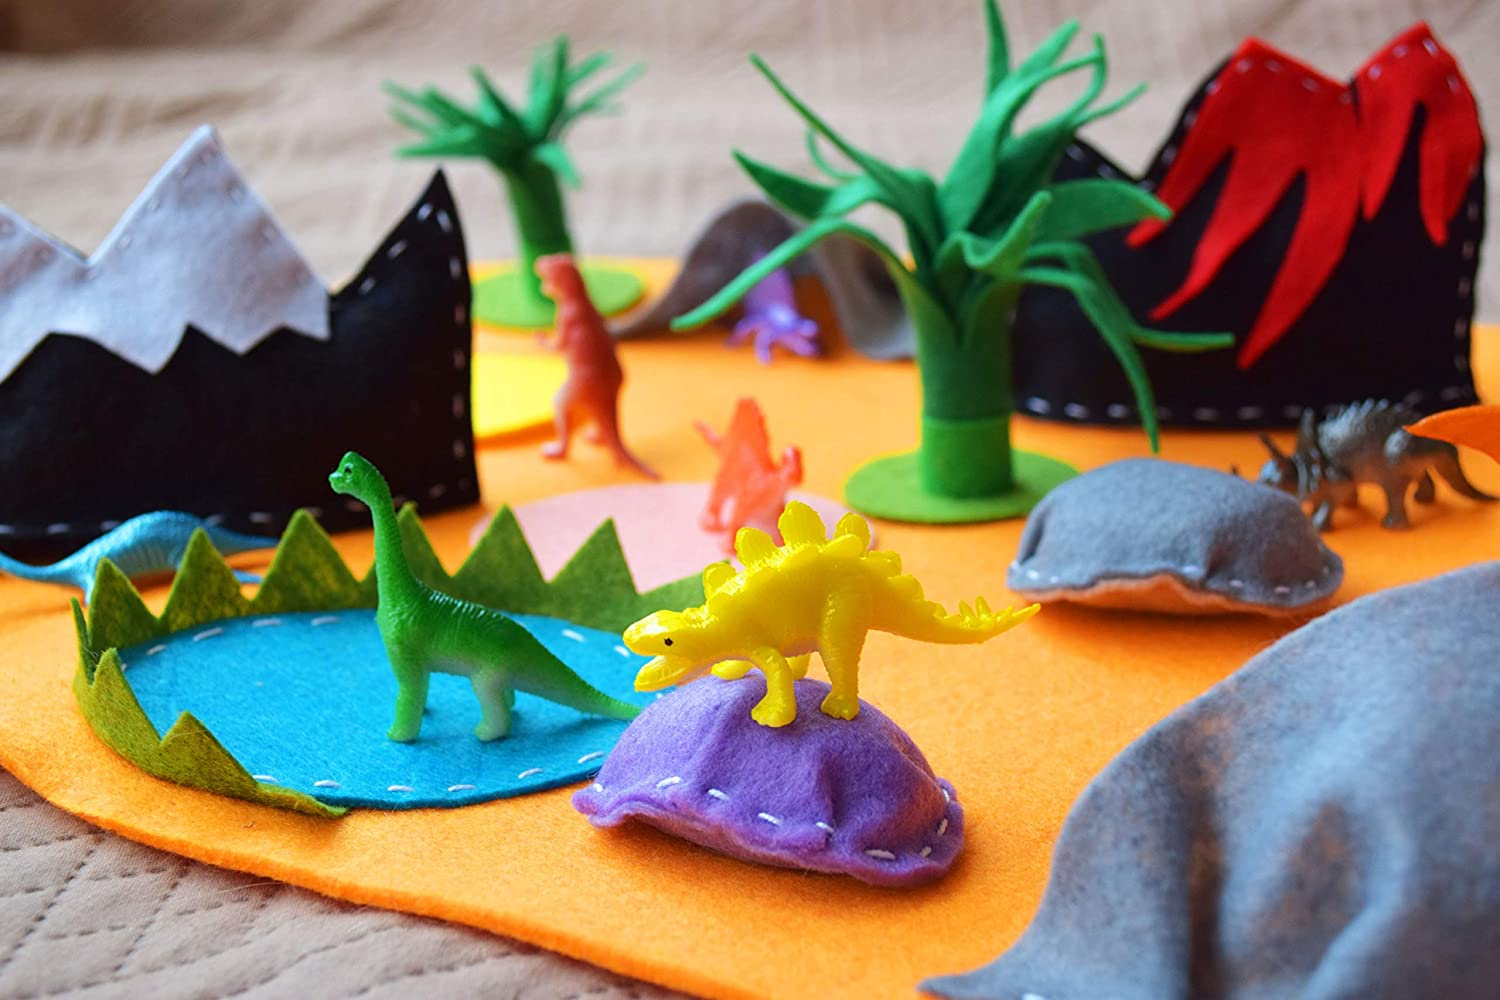 Dino Felt Play Mat with 10 Dinosaurs Playscapes for Kids Travel Toy Toddler Activity Montessori Waldorf Play Set Imaginative Educational